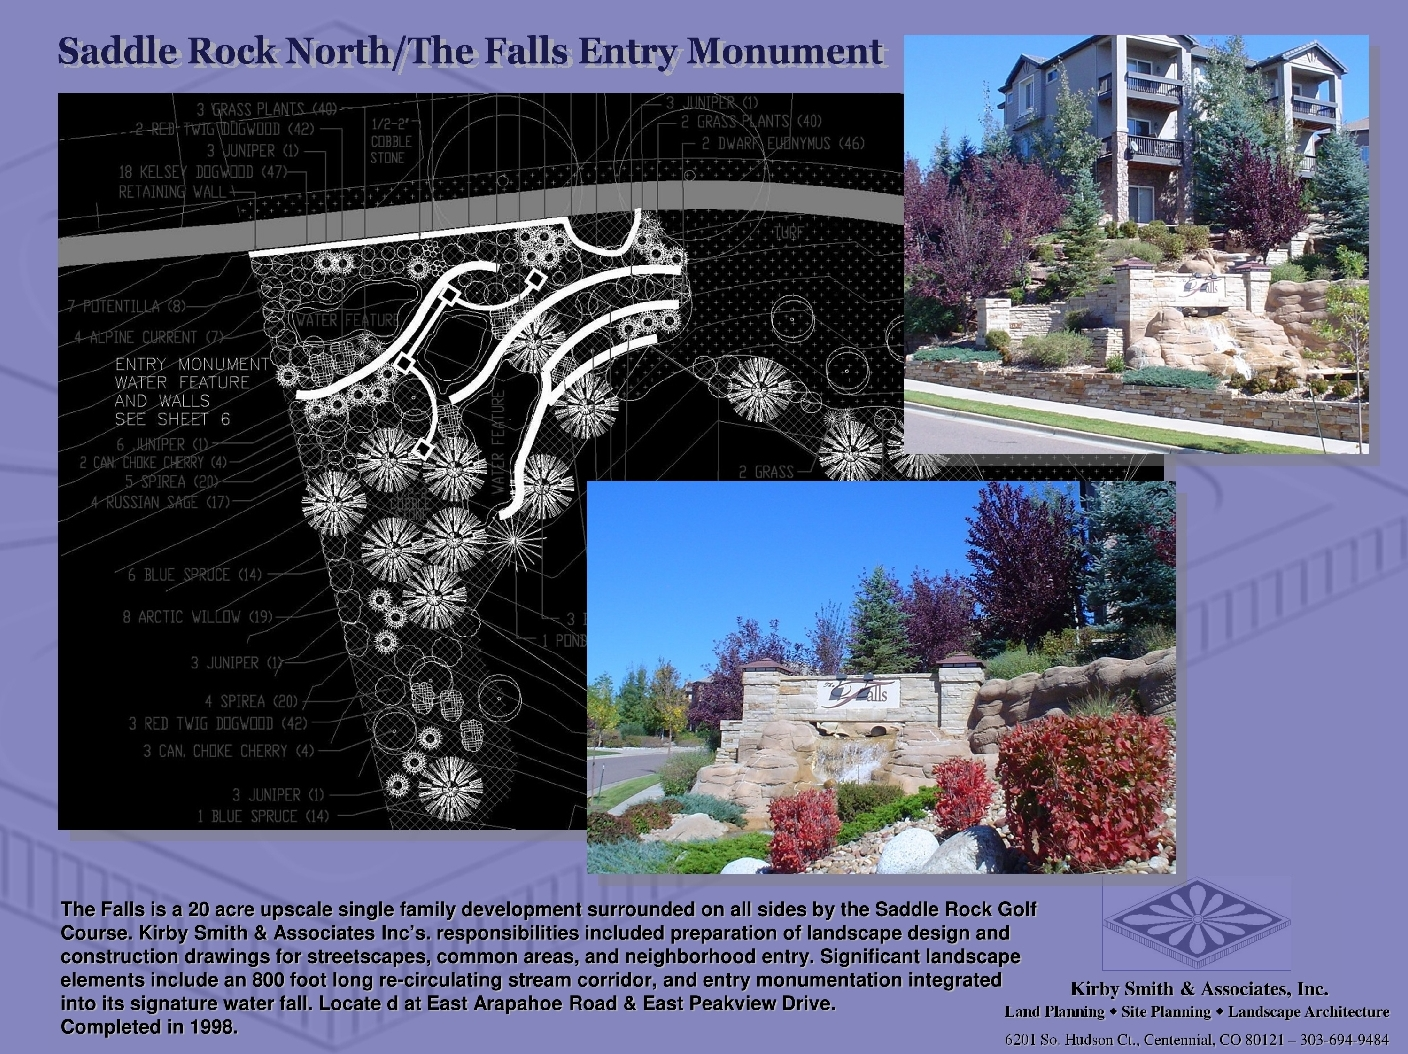 The Falls is a 20 acre upscale single family development surrounded on all sides by the Saddle Rock Golf Course. KSA, Inc's. responsibilities included preparation of landscape design and construction drawings for streetscapes, common areas, and neighborhood entry. Significant landscape  elements include an 800 foot long re-circulating stream corridor, and entry monumentation integrated              into its signature water fall.